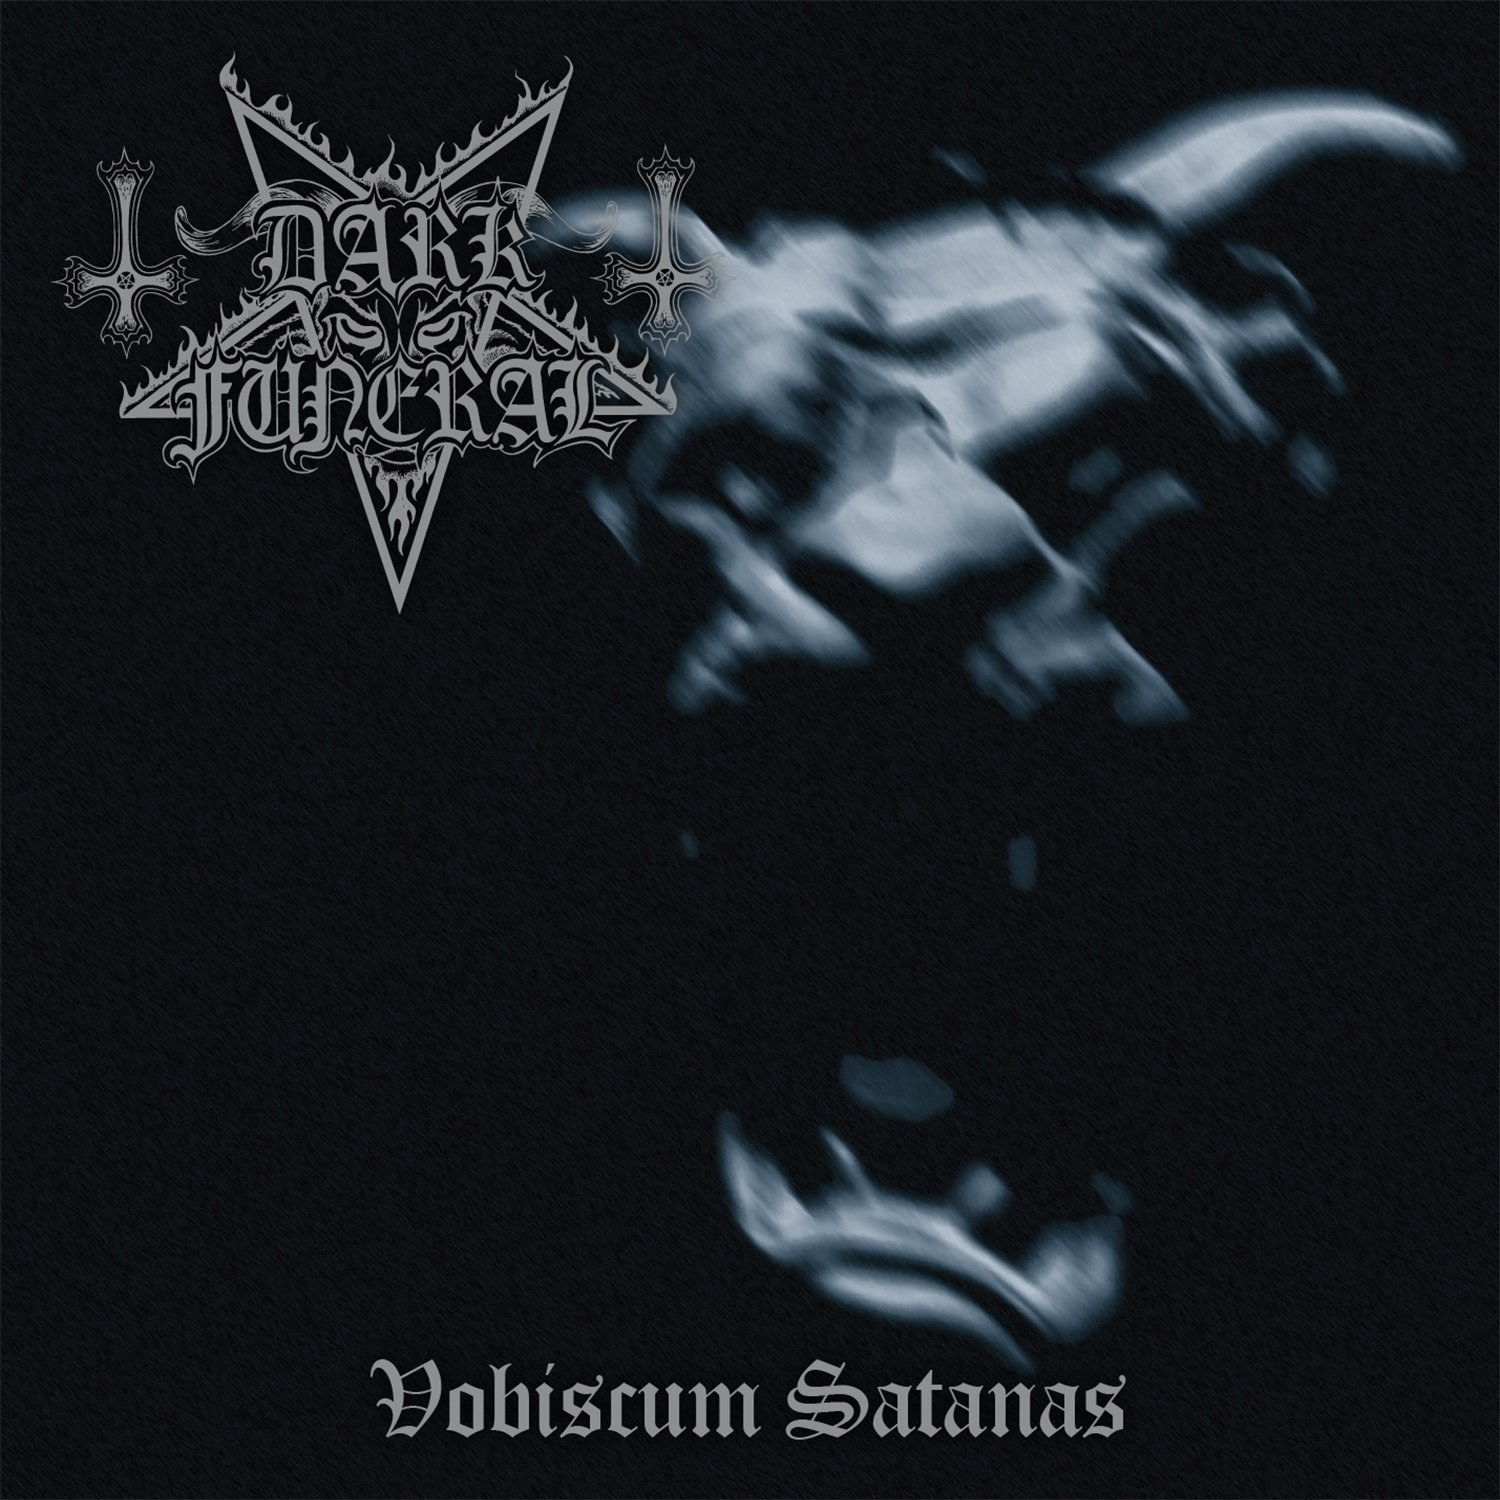 Review for Dark Funeral - Vobiscum Satanas